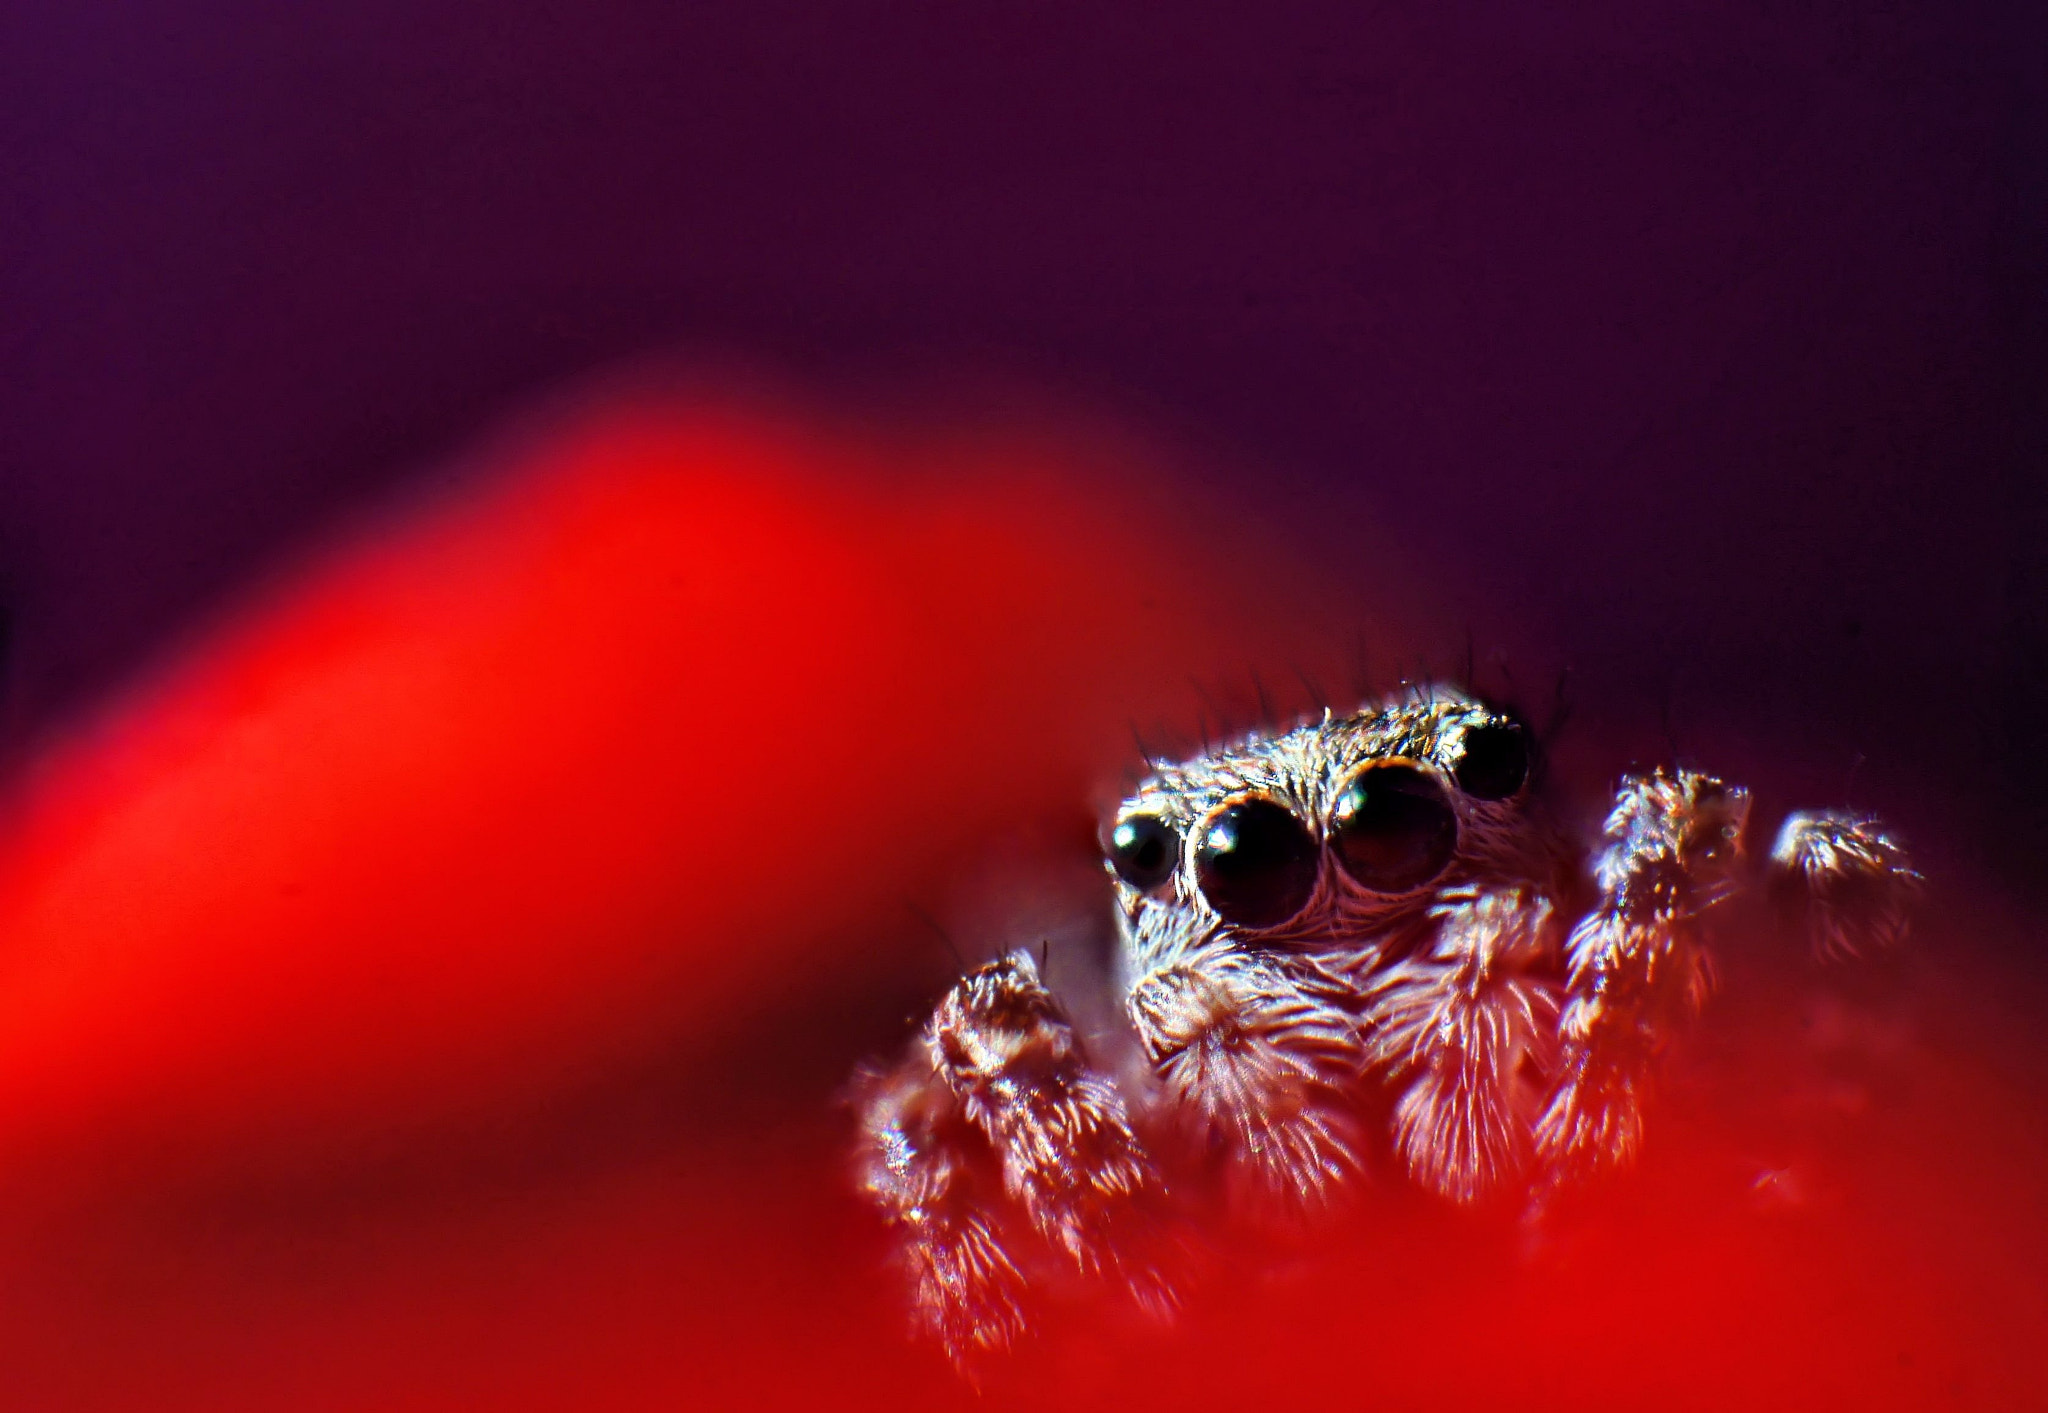 Photograph Jumper by Simon  Staszkowski on 500px